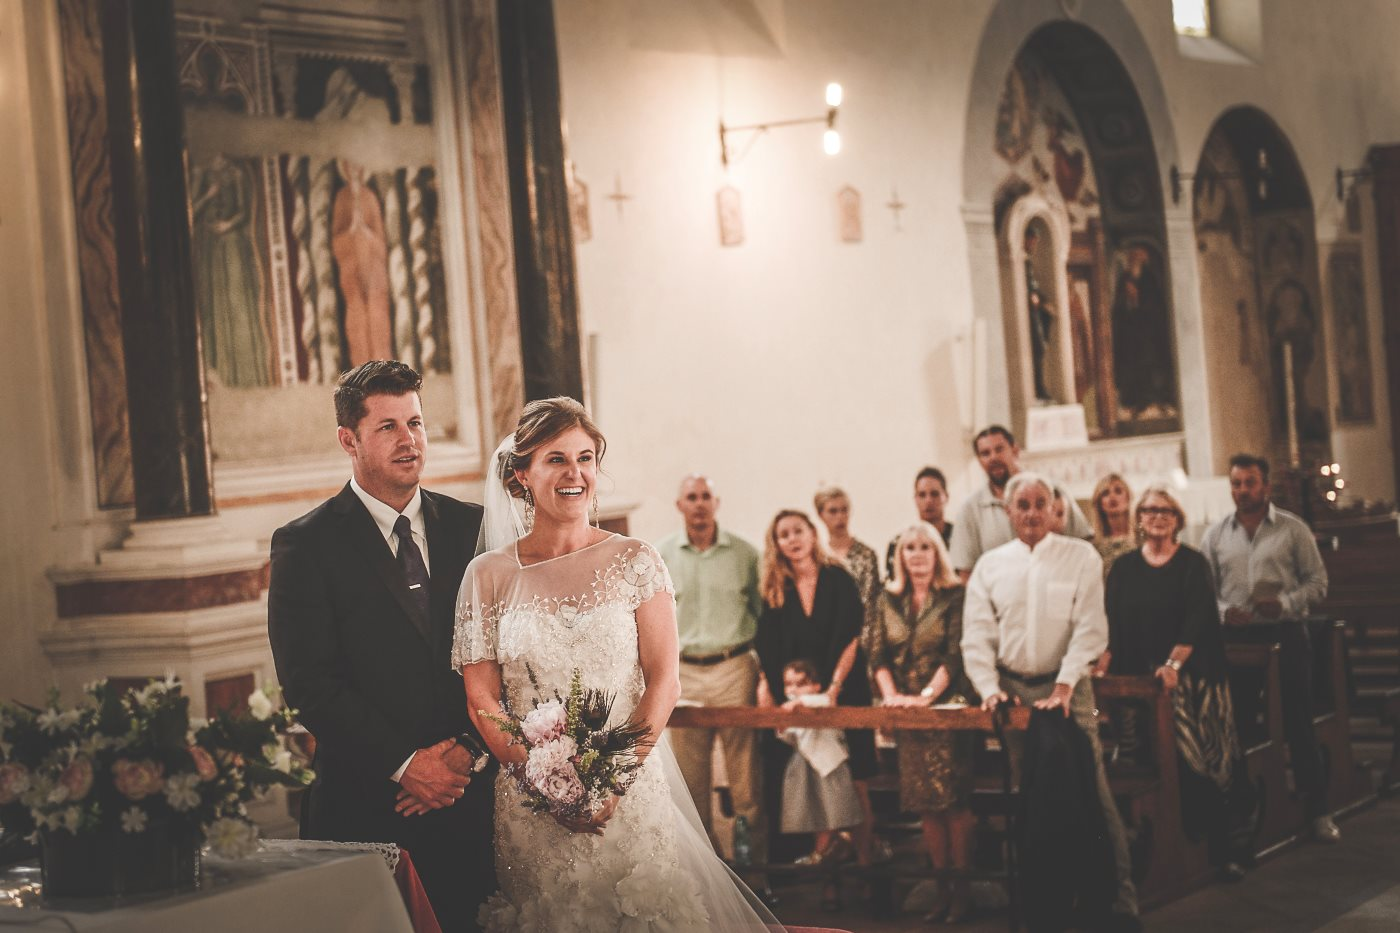 photographer_weddings_san_gimignano_07.jpg